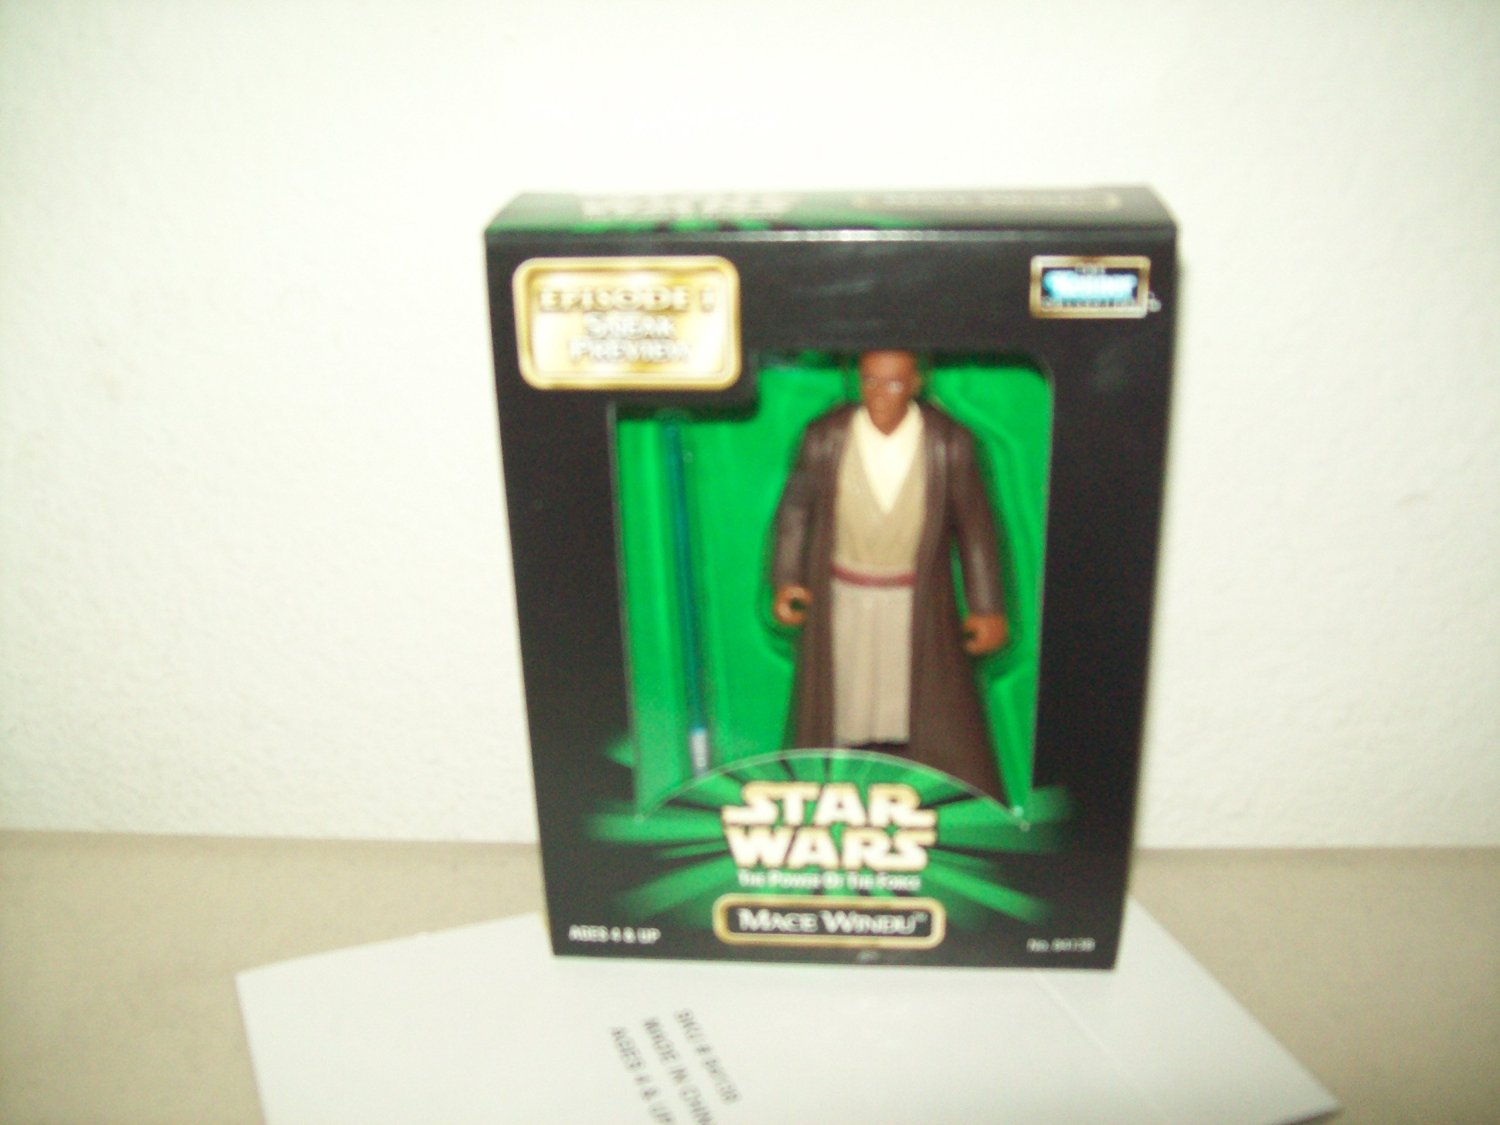 Image for Star Wars: The Power of the Force Episode I Sneak Preview Mace Windu 4 inch Action Figure